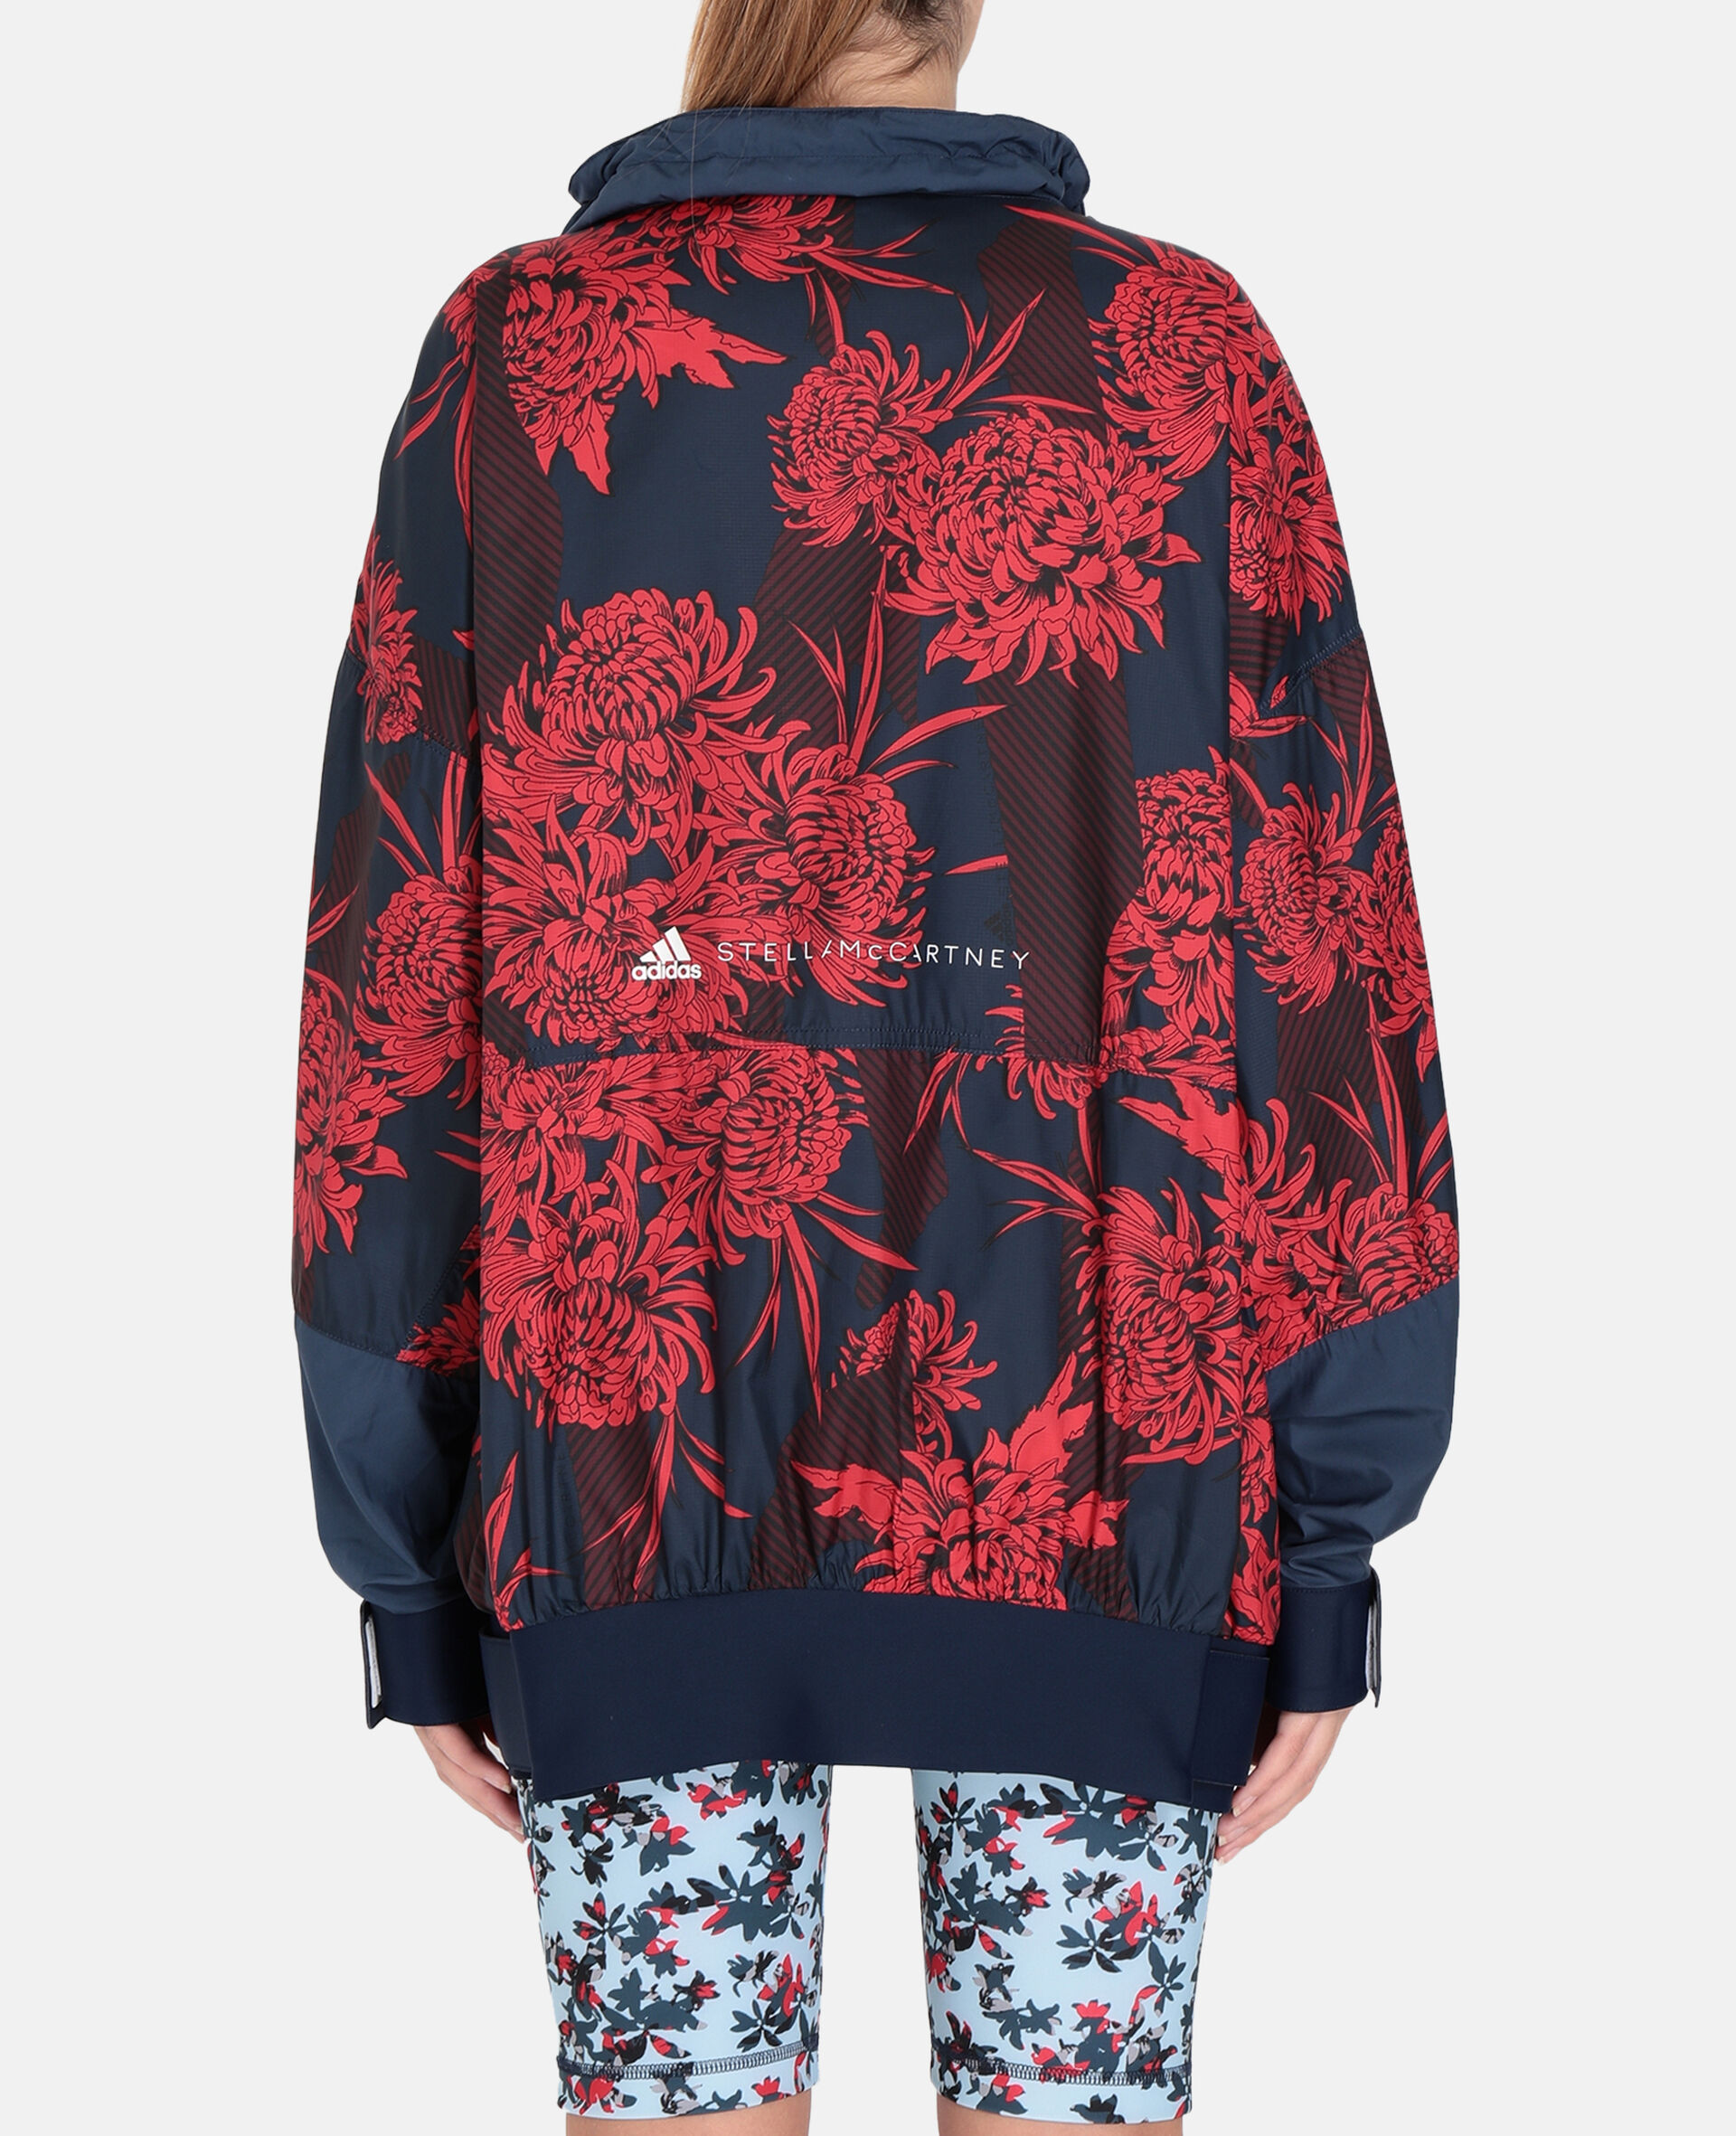 Future Playground Printed Jacket -Red-large image number 2